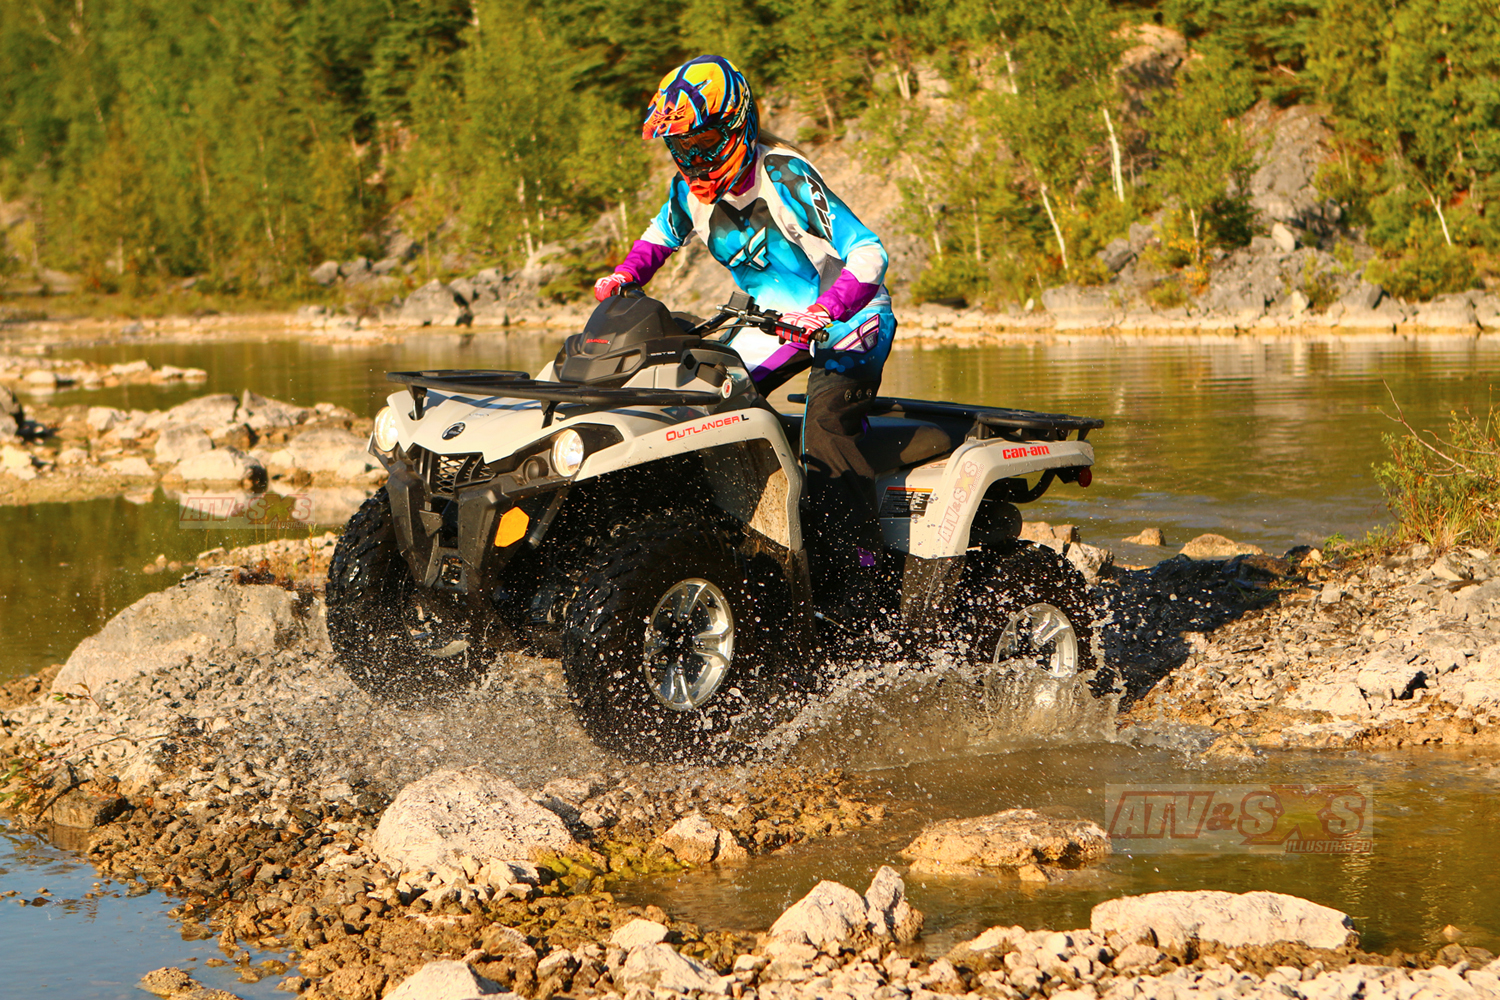 michigan-atv-orv-trails-upper-peninsula.jpg